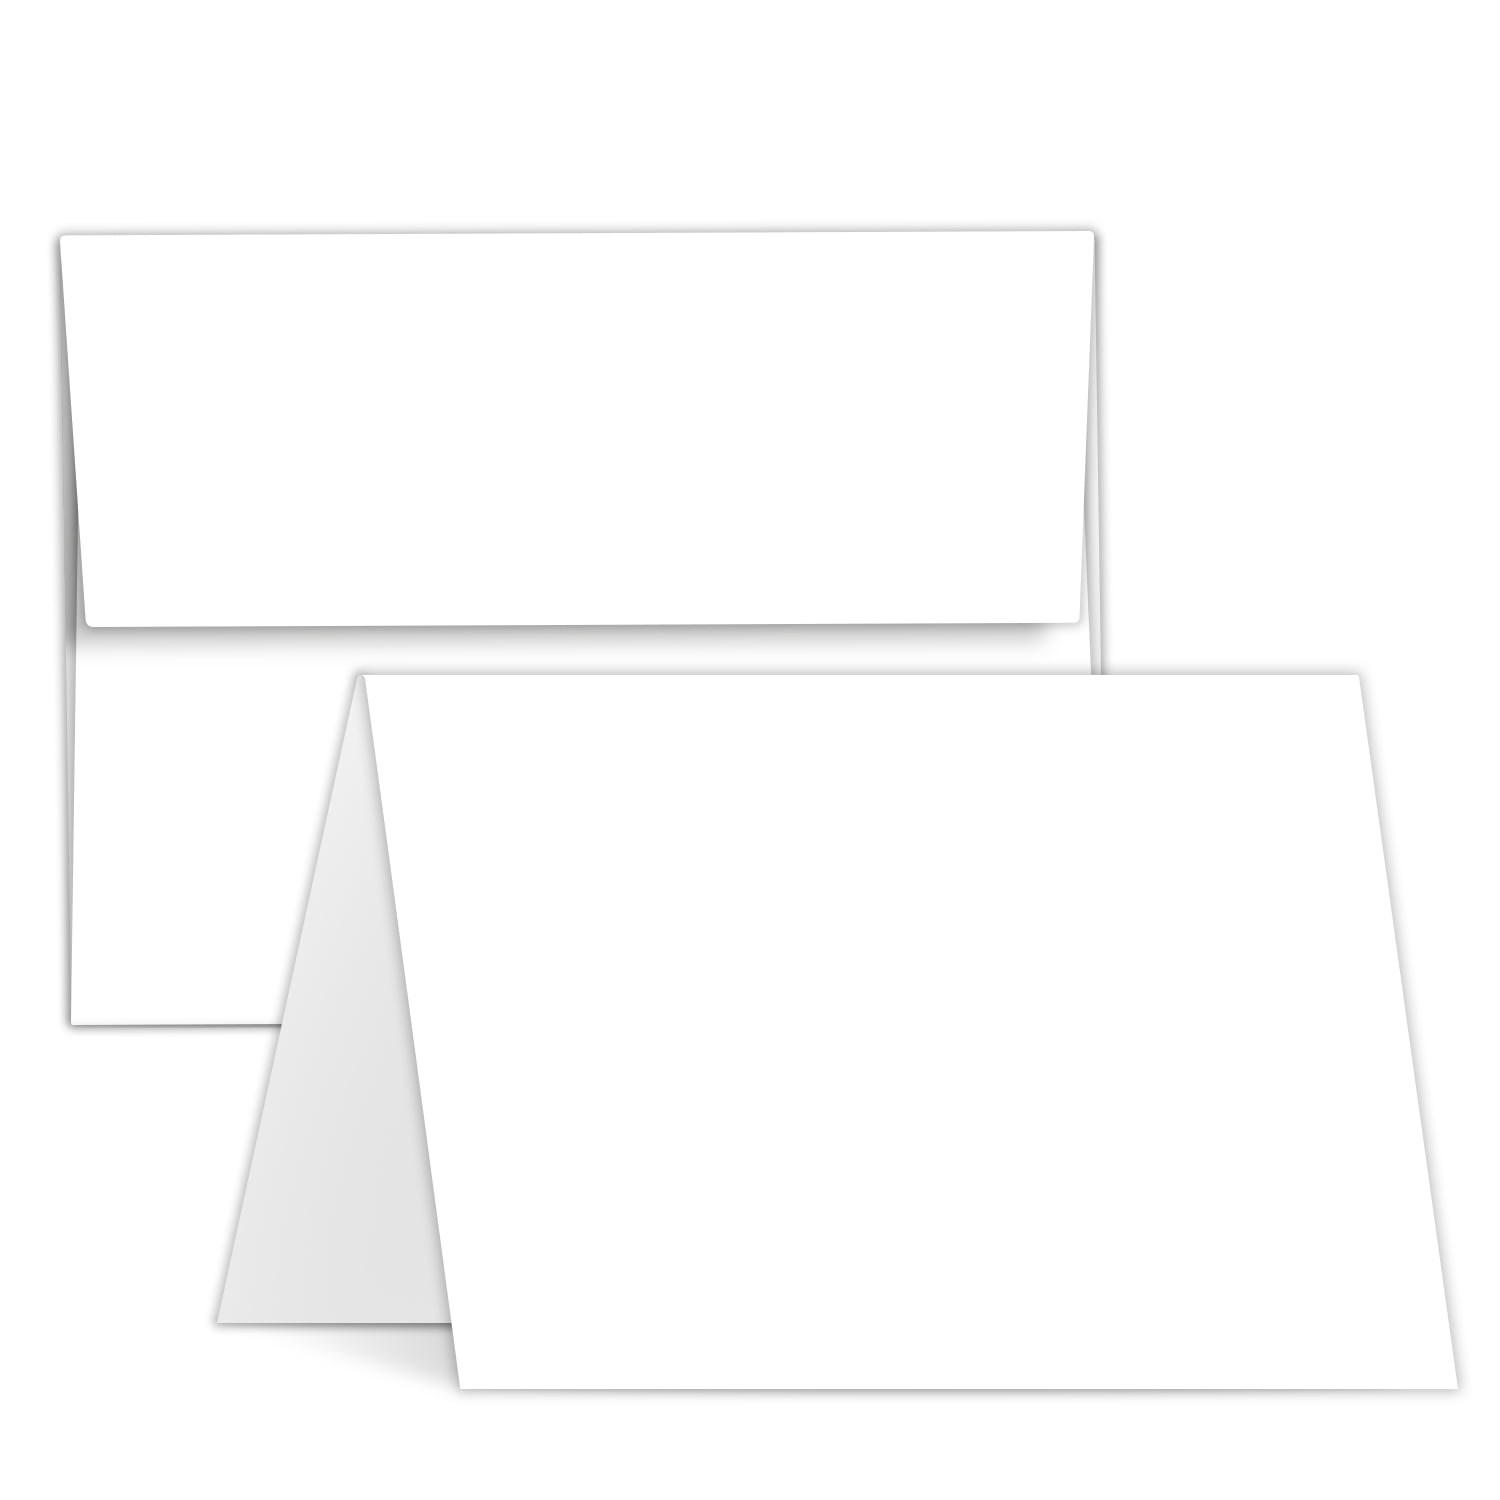 6 in a set 5x7 pick any artwork Custom Greeting Cards